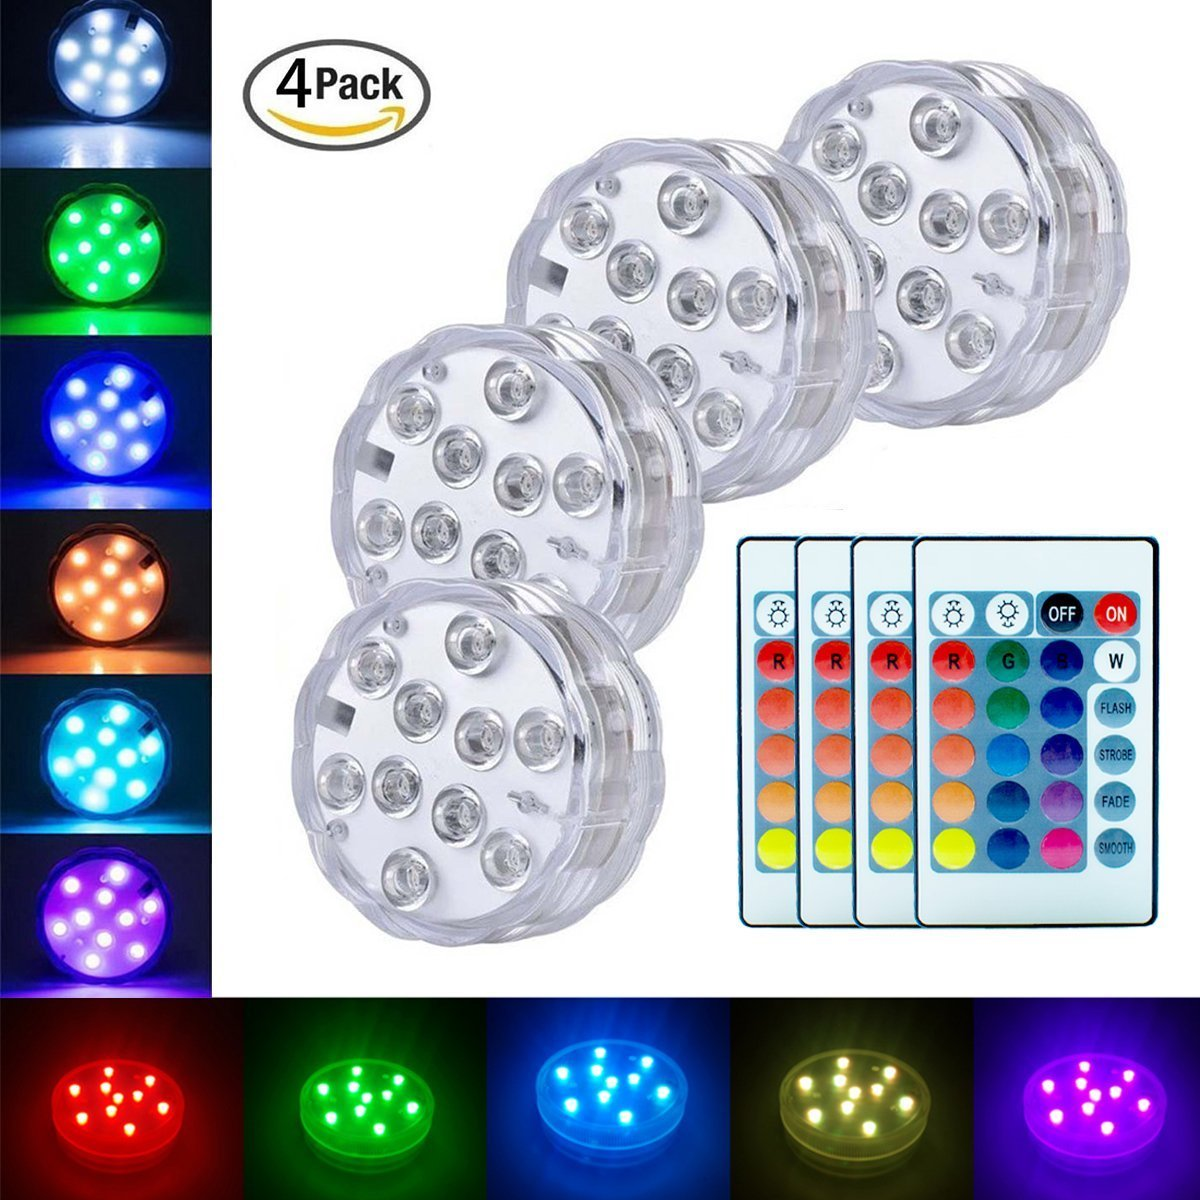 Submersible LED Lights, LoveNite Underwater Waterproof Battery Operated Remote Control Wireless Multi Color 10 LED RGB Reusable light for Tub Swimming Pool,Pond Party,Vase Base,Wedding,Christmas,Aquar